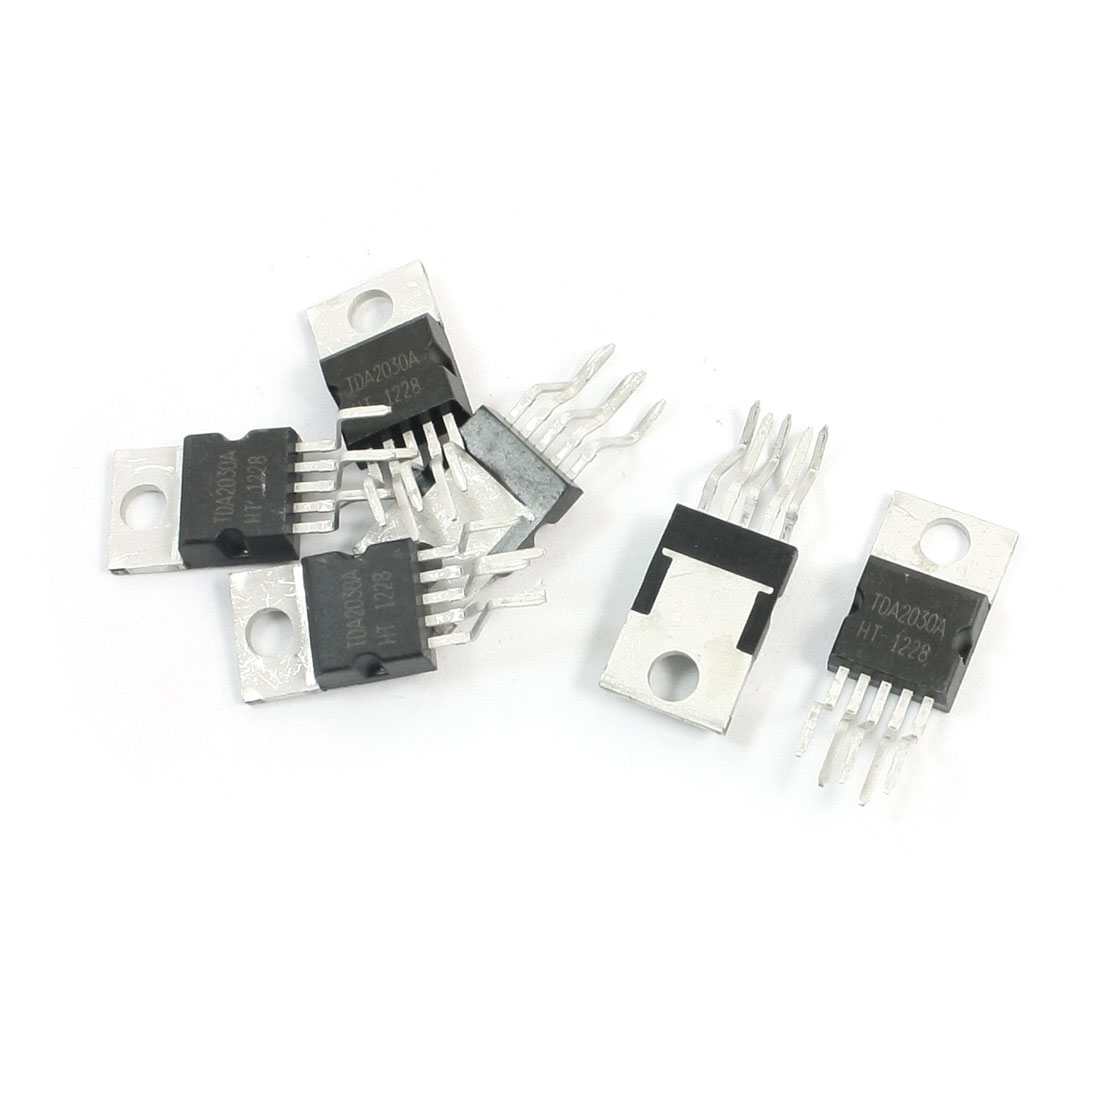 6Pcs TDA2030A TO-220 5-Pin 18W Hi-Fi Audio Amplifier 35W Low Power Driver Integrated Circuit IC Chip